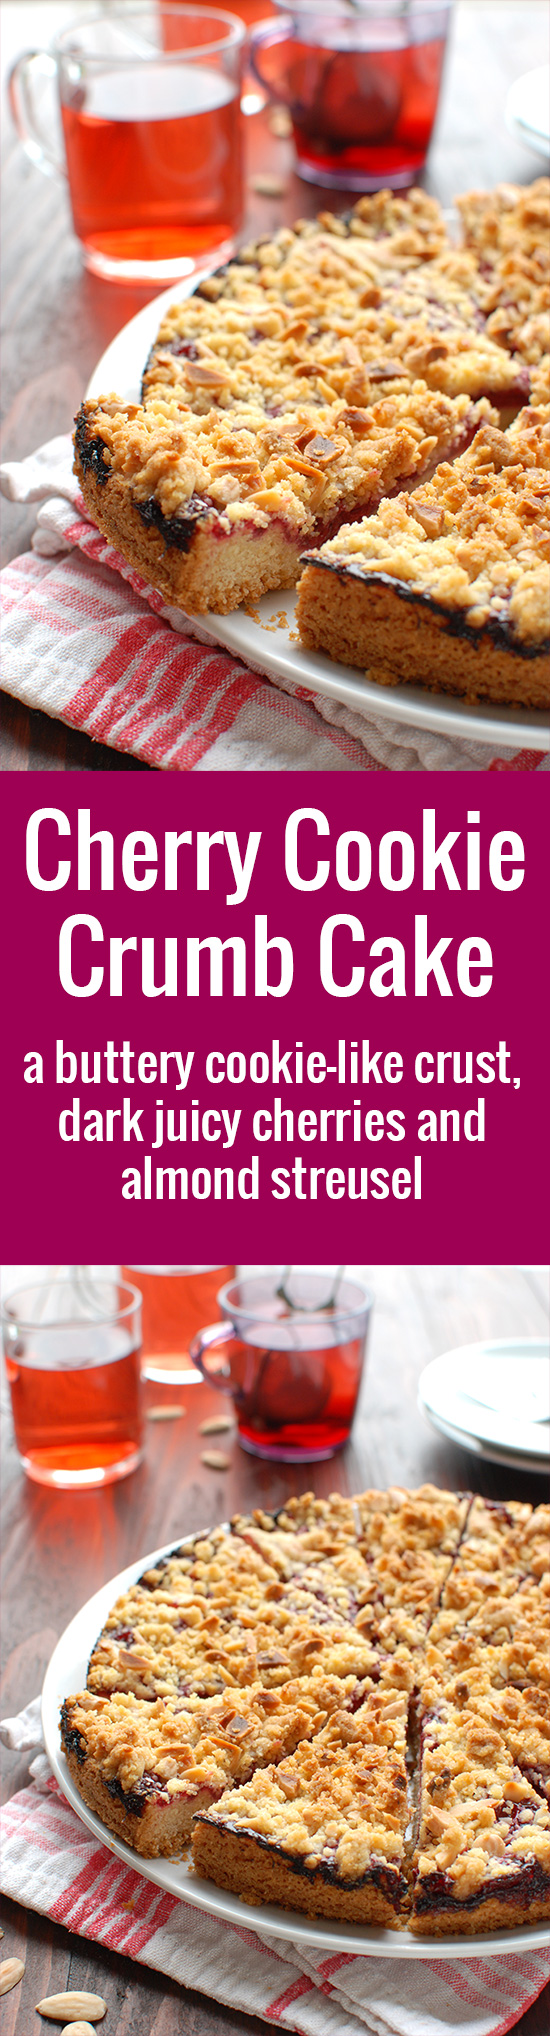 Cherry Cookie Crumb Cake - a buttery cookie-like crust, a dark cherry filling and almond streusel. Delicious! | thetoughcookie.com